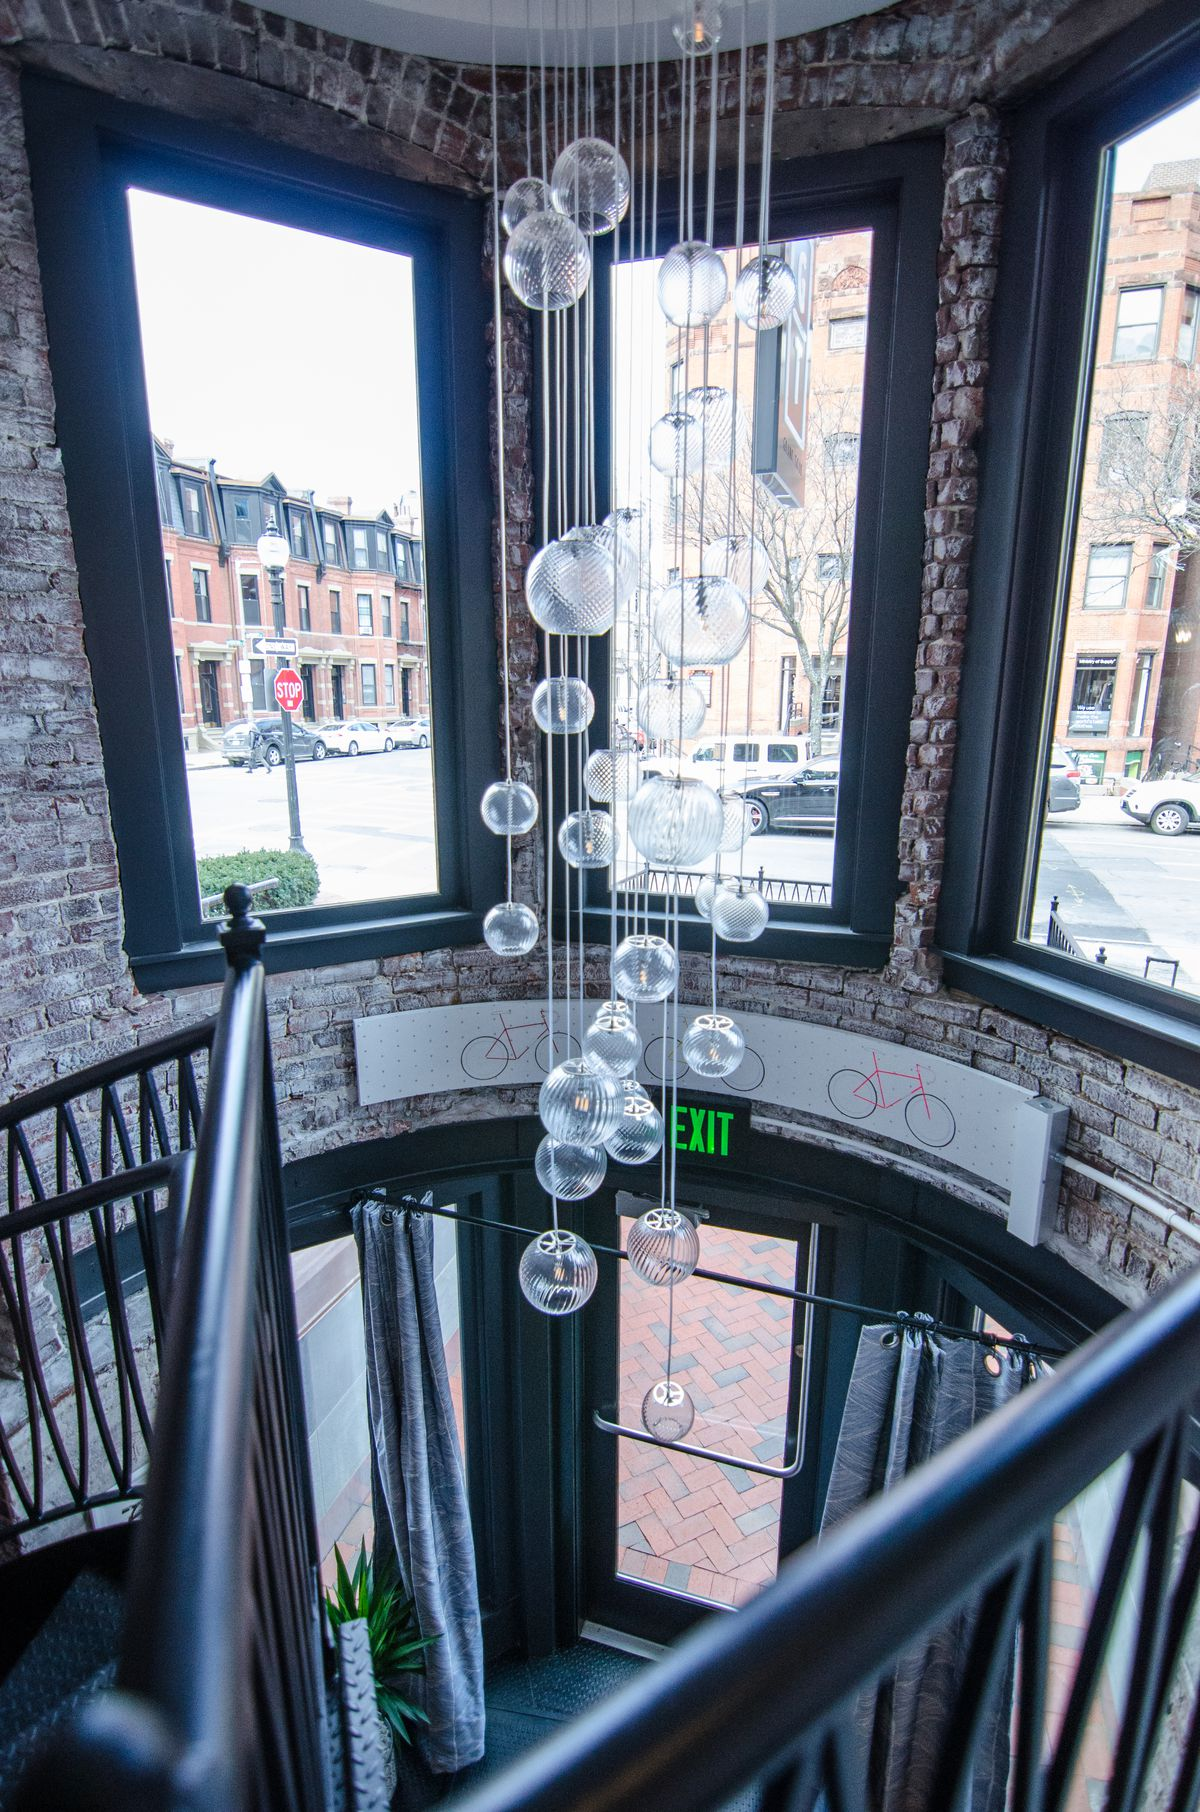 A glass globe light fixture dangles down a two-story restaurant space with white-washed brick walls. The city street is visible through large windows.